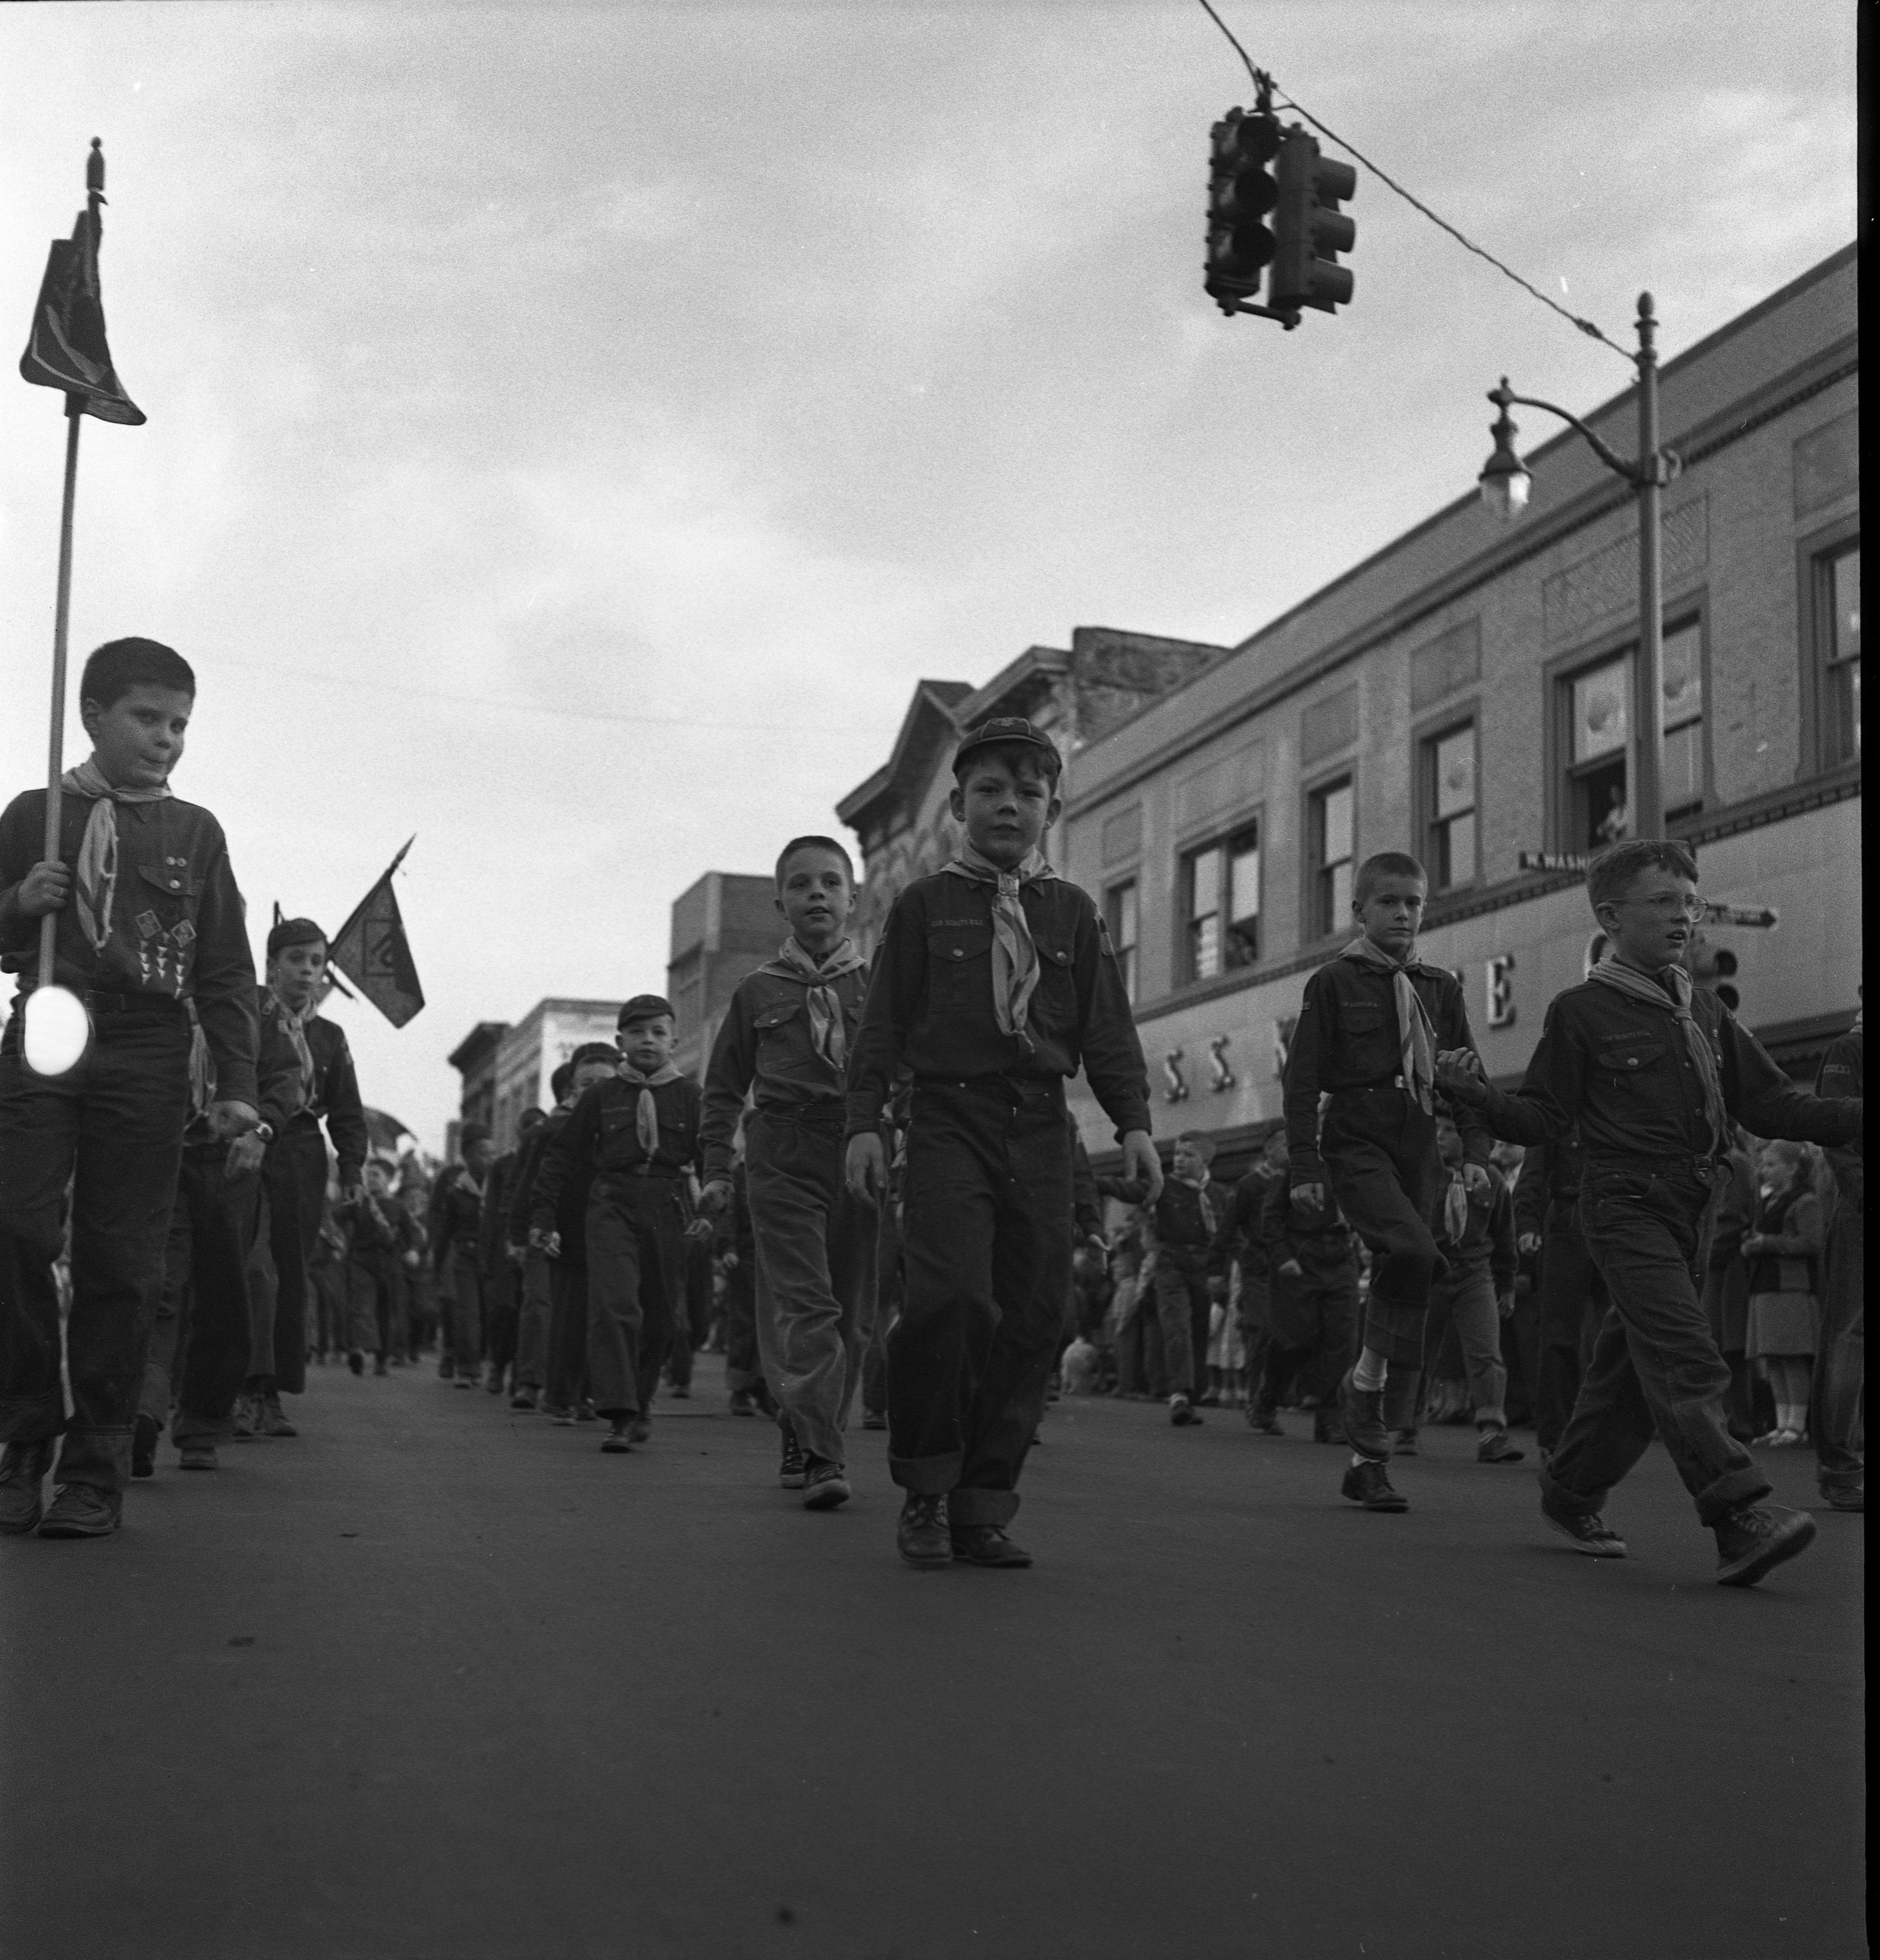 Cub Scouts Marching In Memorial Day Parade, May 1952 image